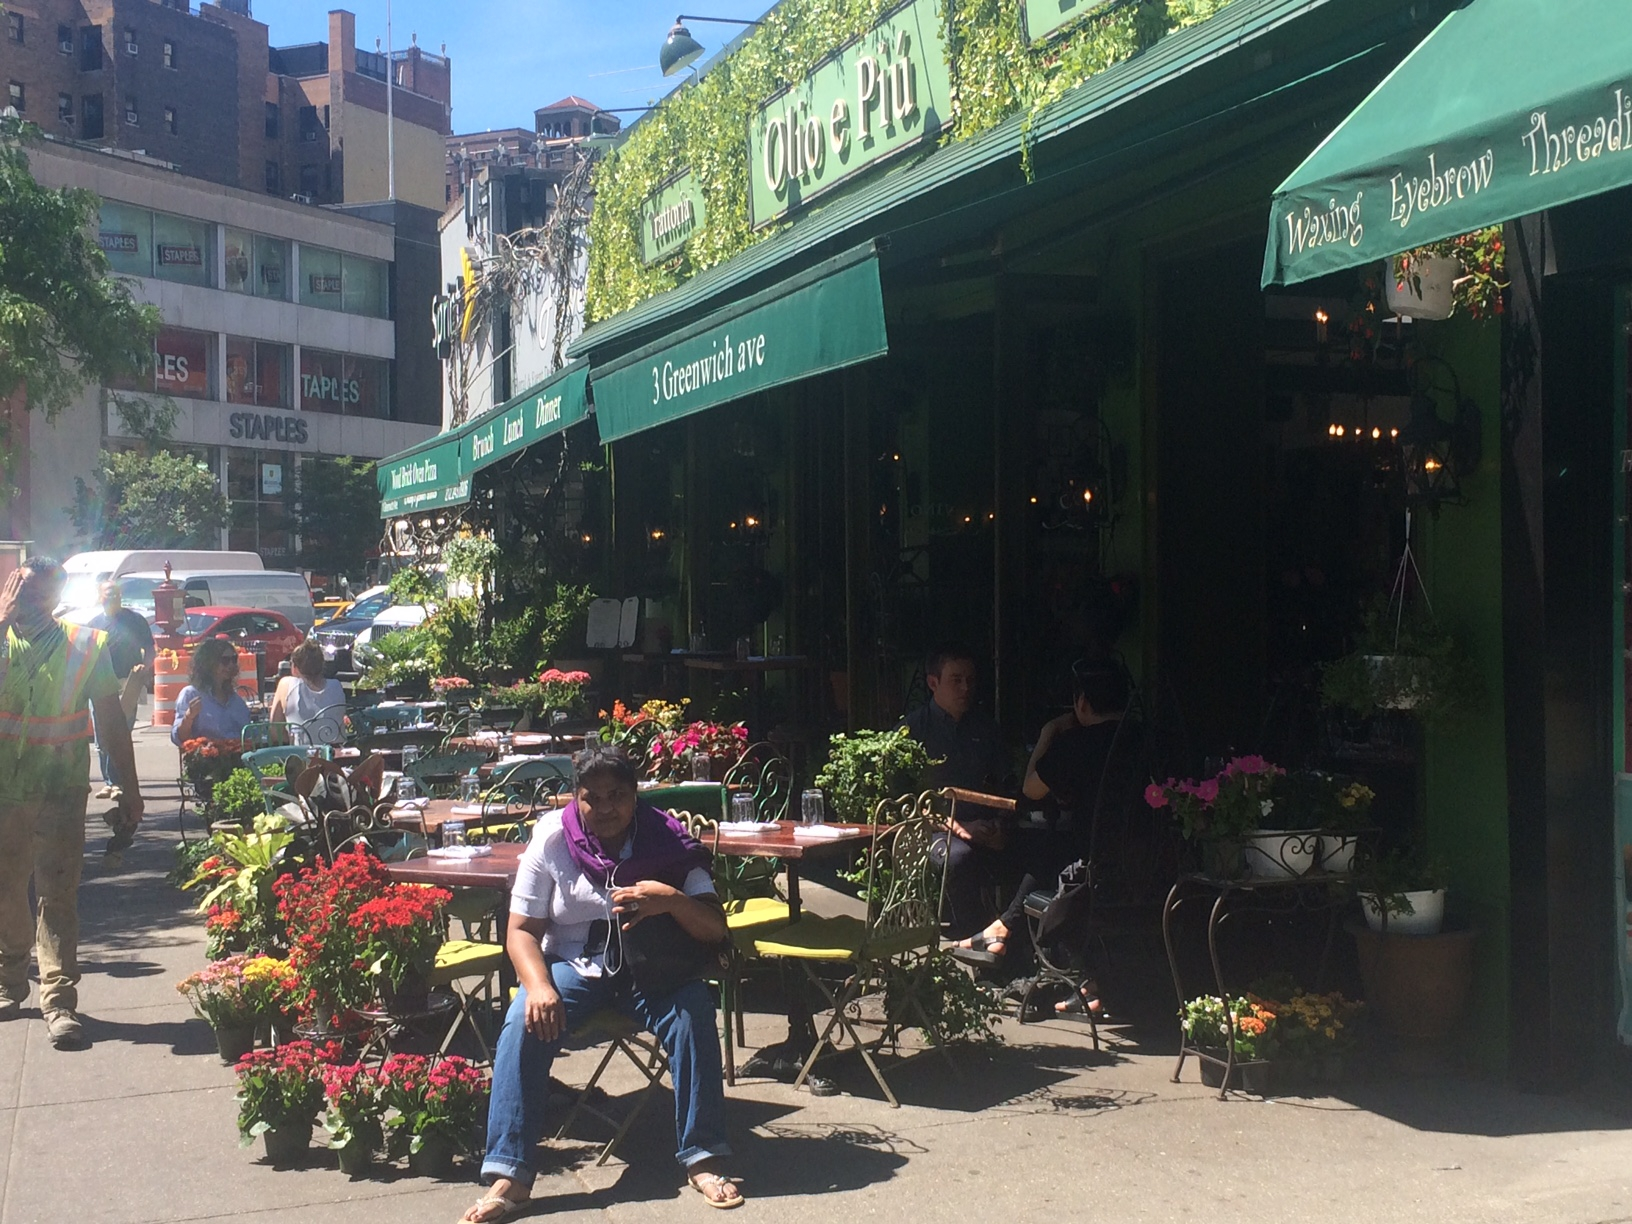 A flower market spills over into a restaurant patio